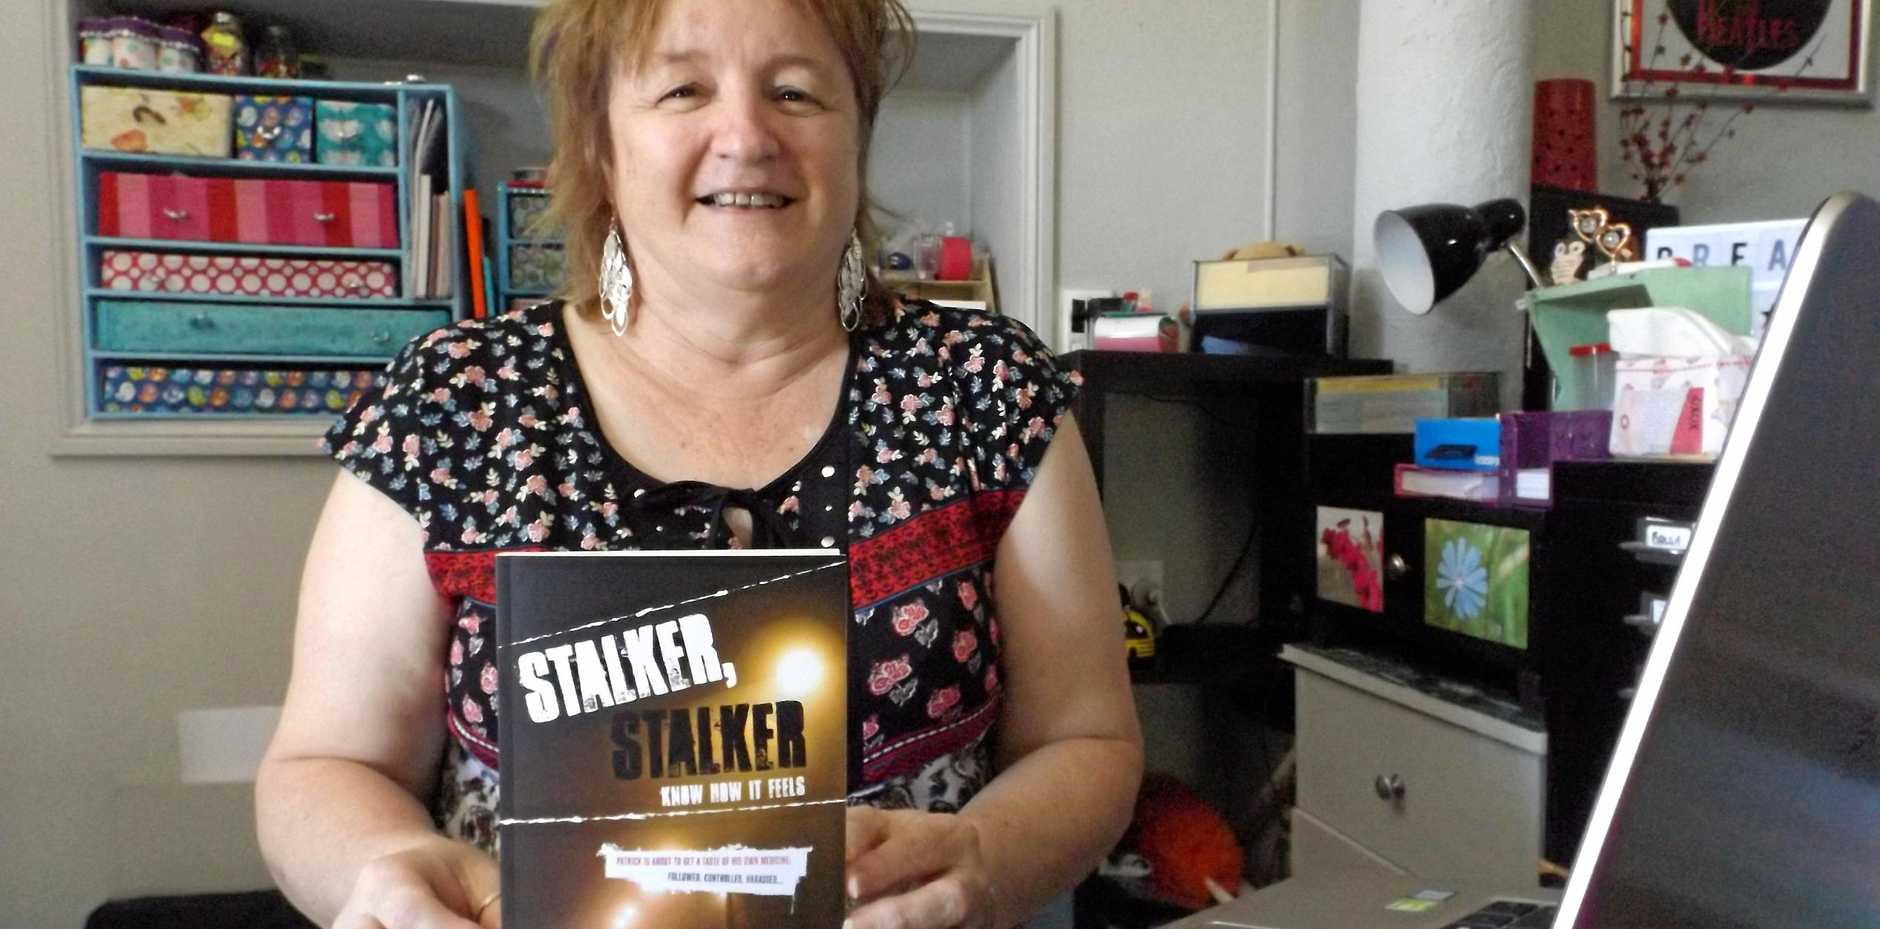 NEW BOOK: Therese Sullivan found a safe haven in prose and will launch her first published novel Stalker, Stalker - Know How It Feels in March.